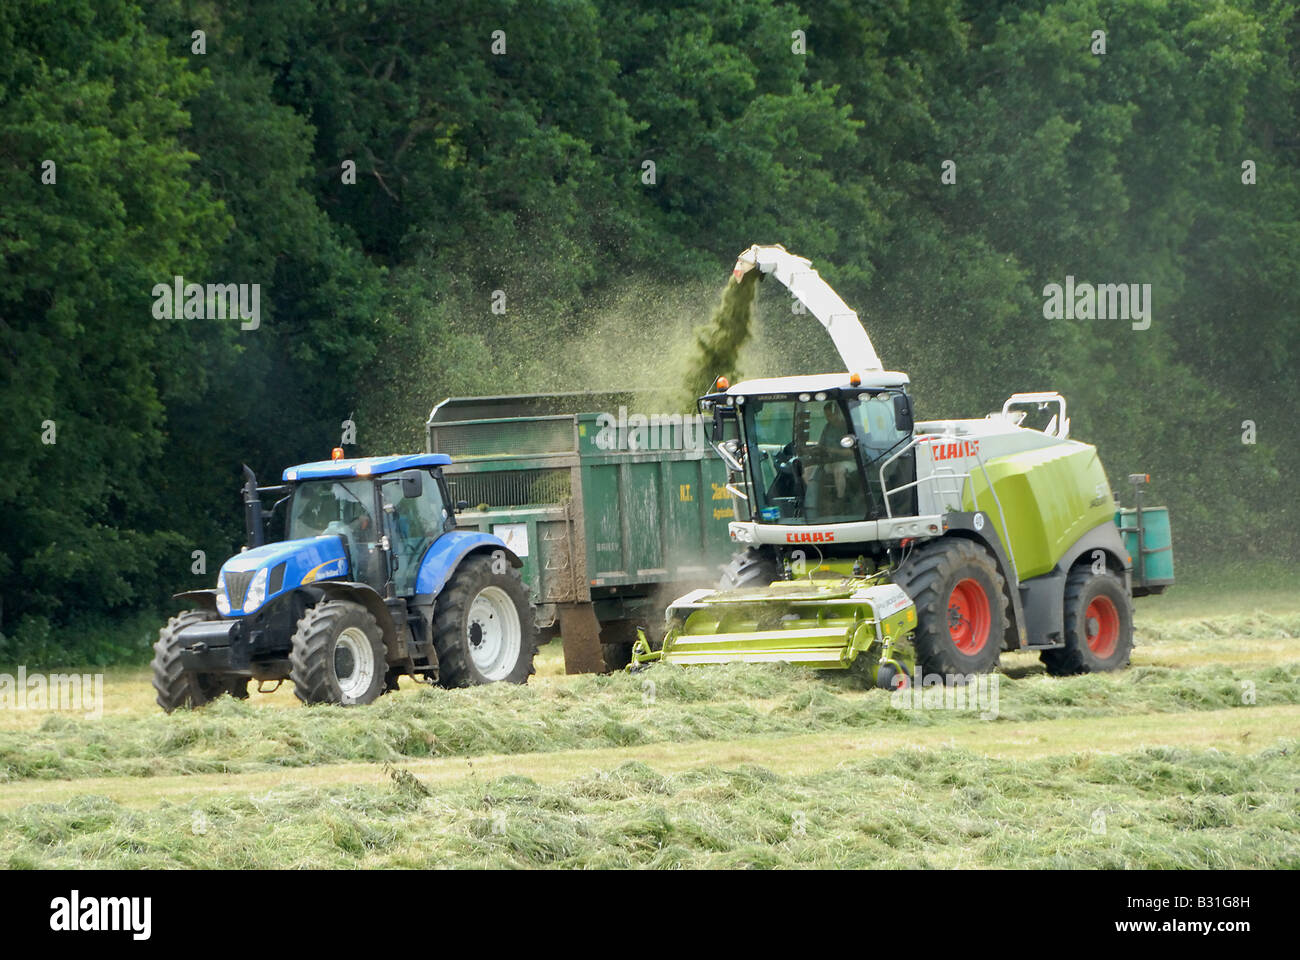 Silage cutting and forage harvesting pastureland for winter cattle feed on Parkhurst Farm in West Sussex - Stock Image